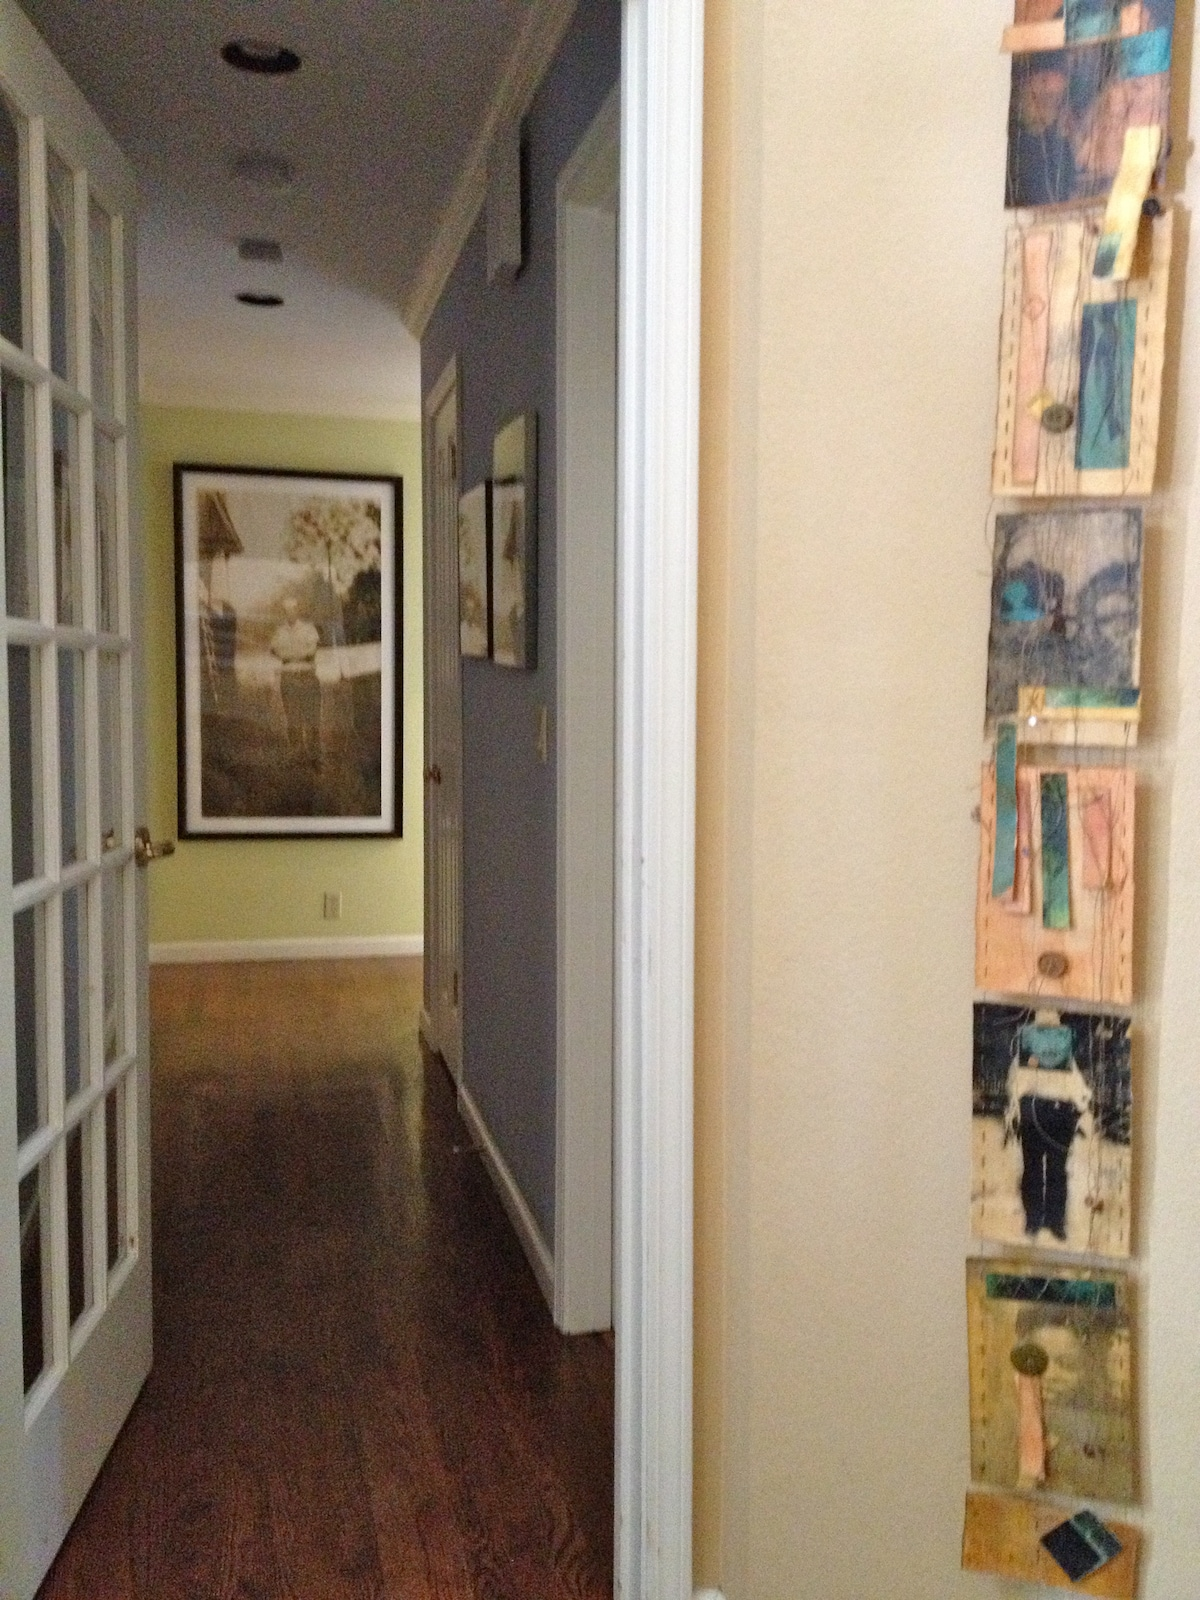 Take a left at the front door and here is the hallway with your bedroom and bath.